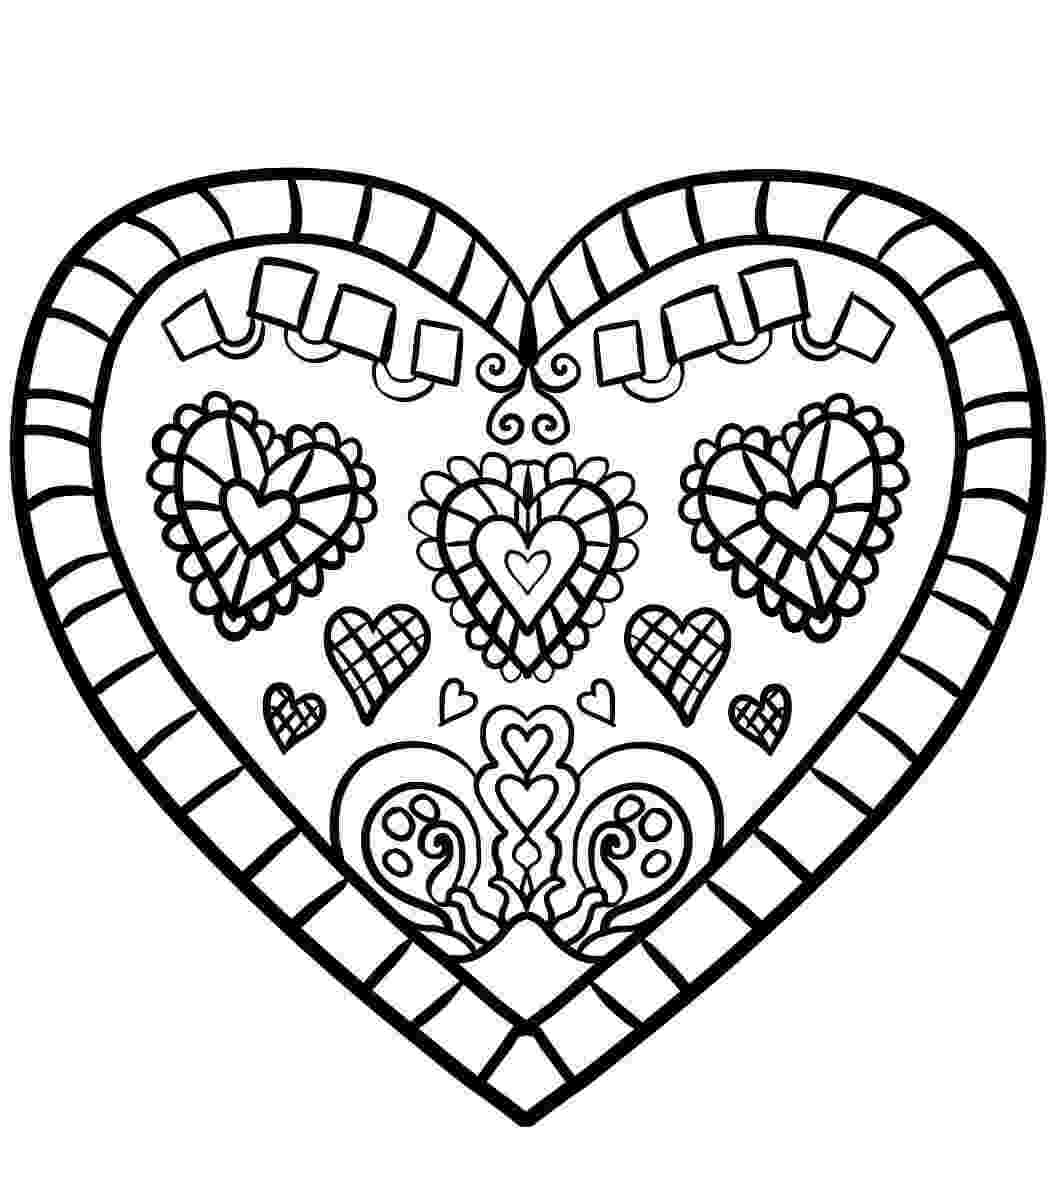 coloring book pictures of hearts hearts coloring pages valentine hearts kids zone at book pictures of hearts coloring